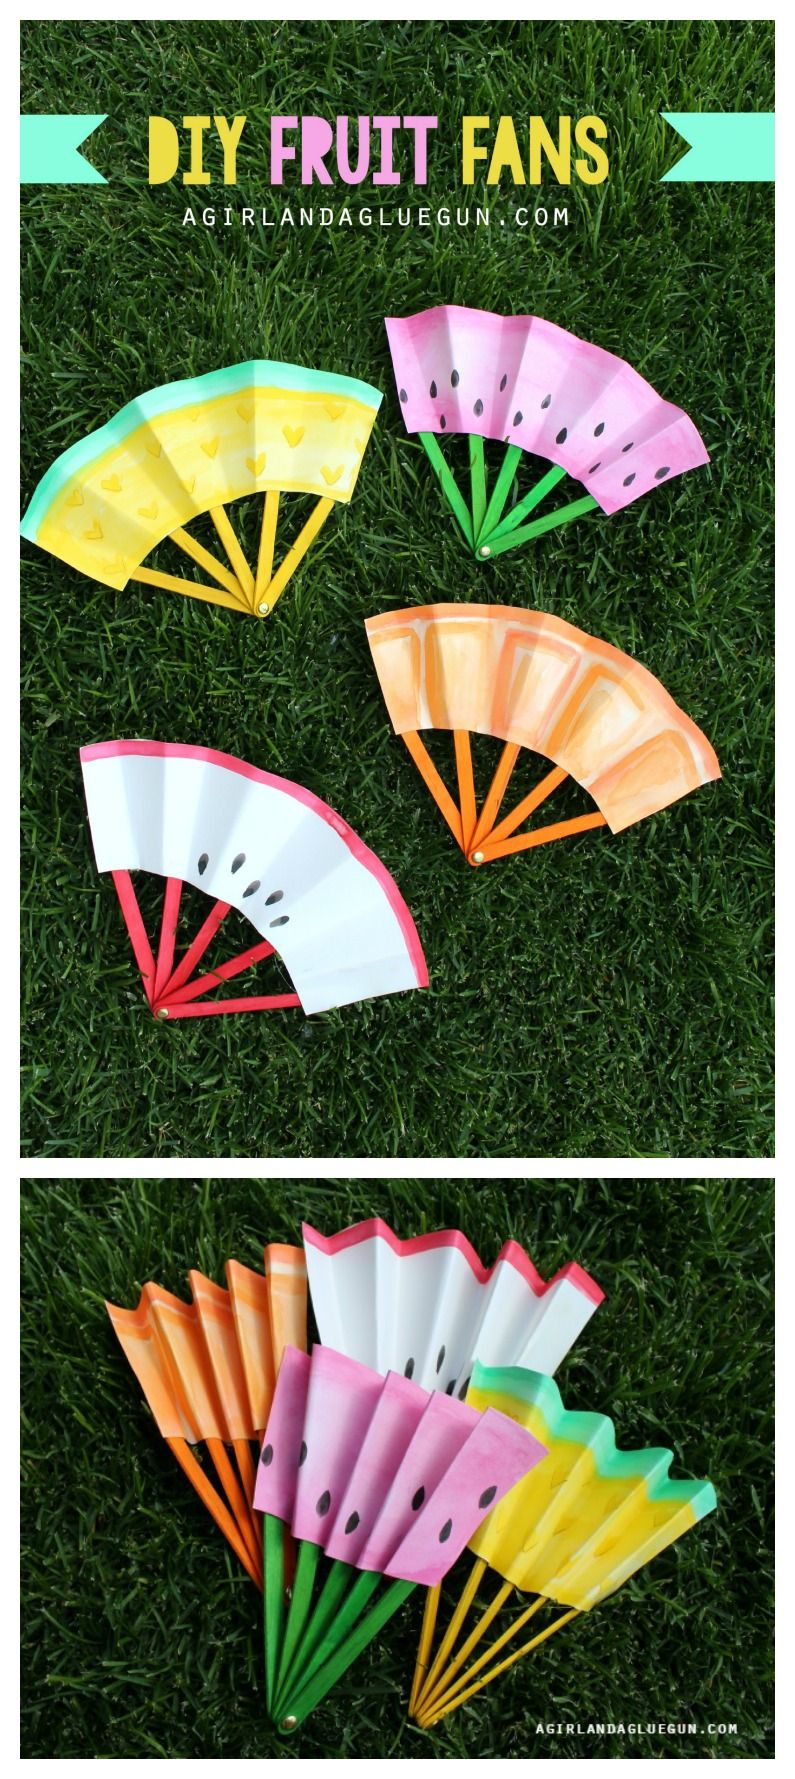 DIY Fruit Fans Kids Craft